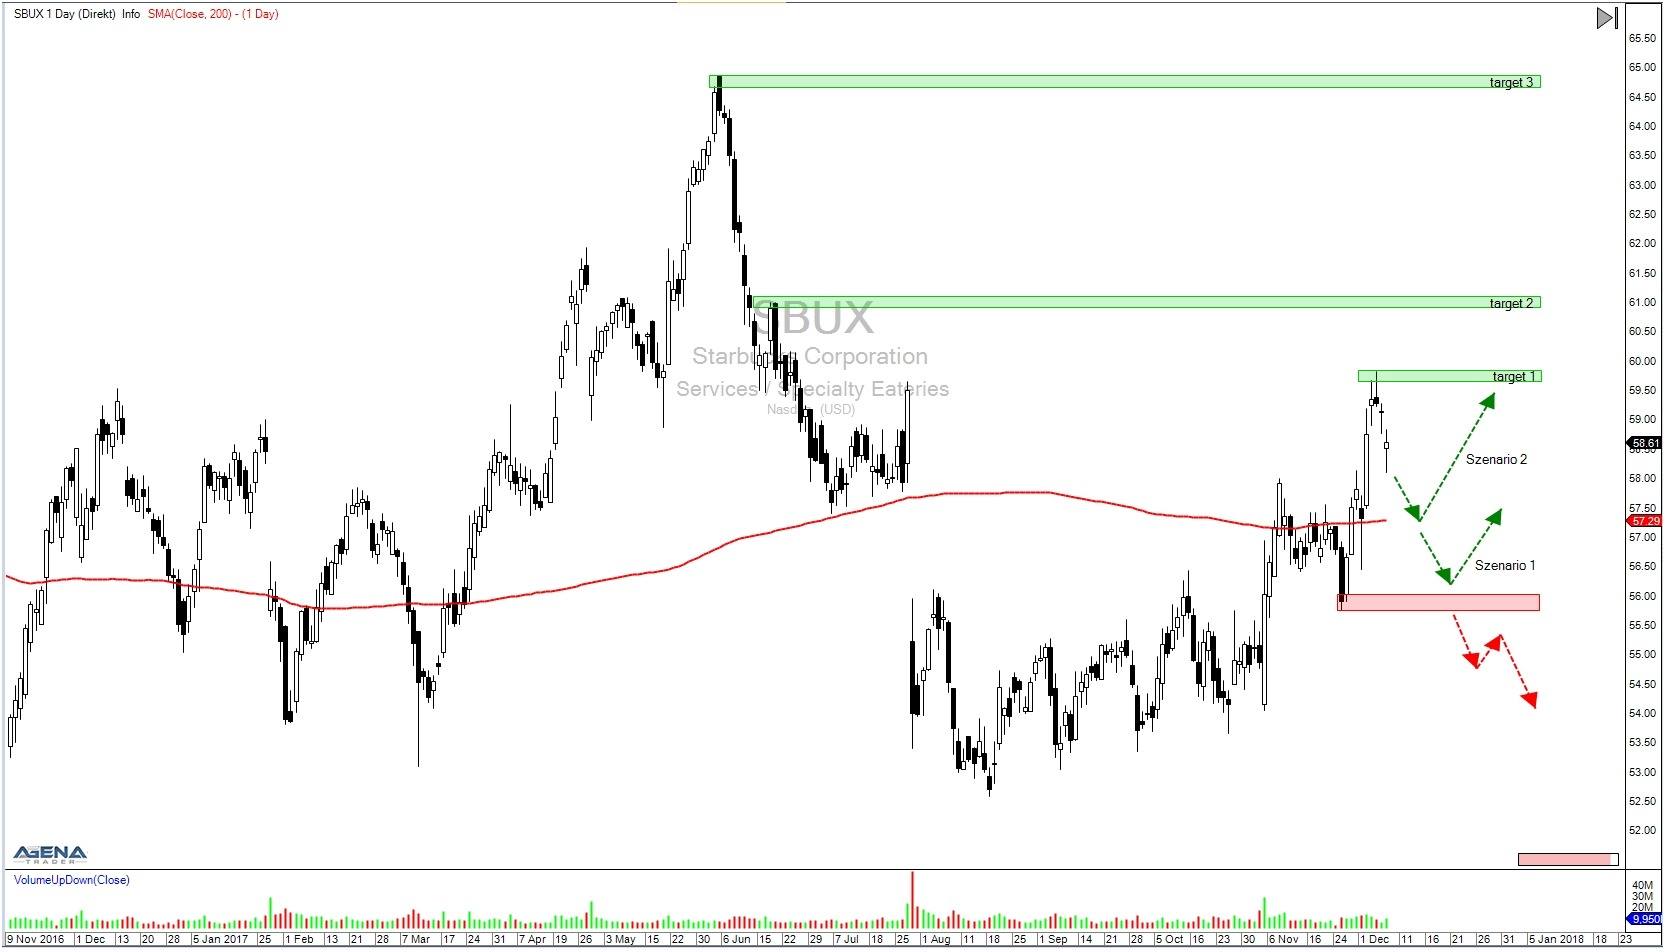 SBUX daily chart with targets